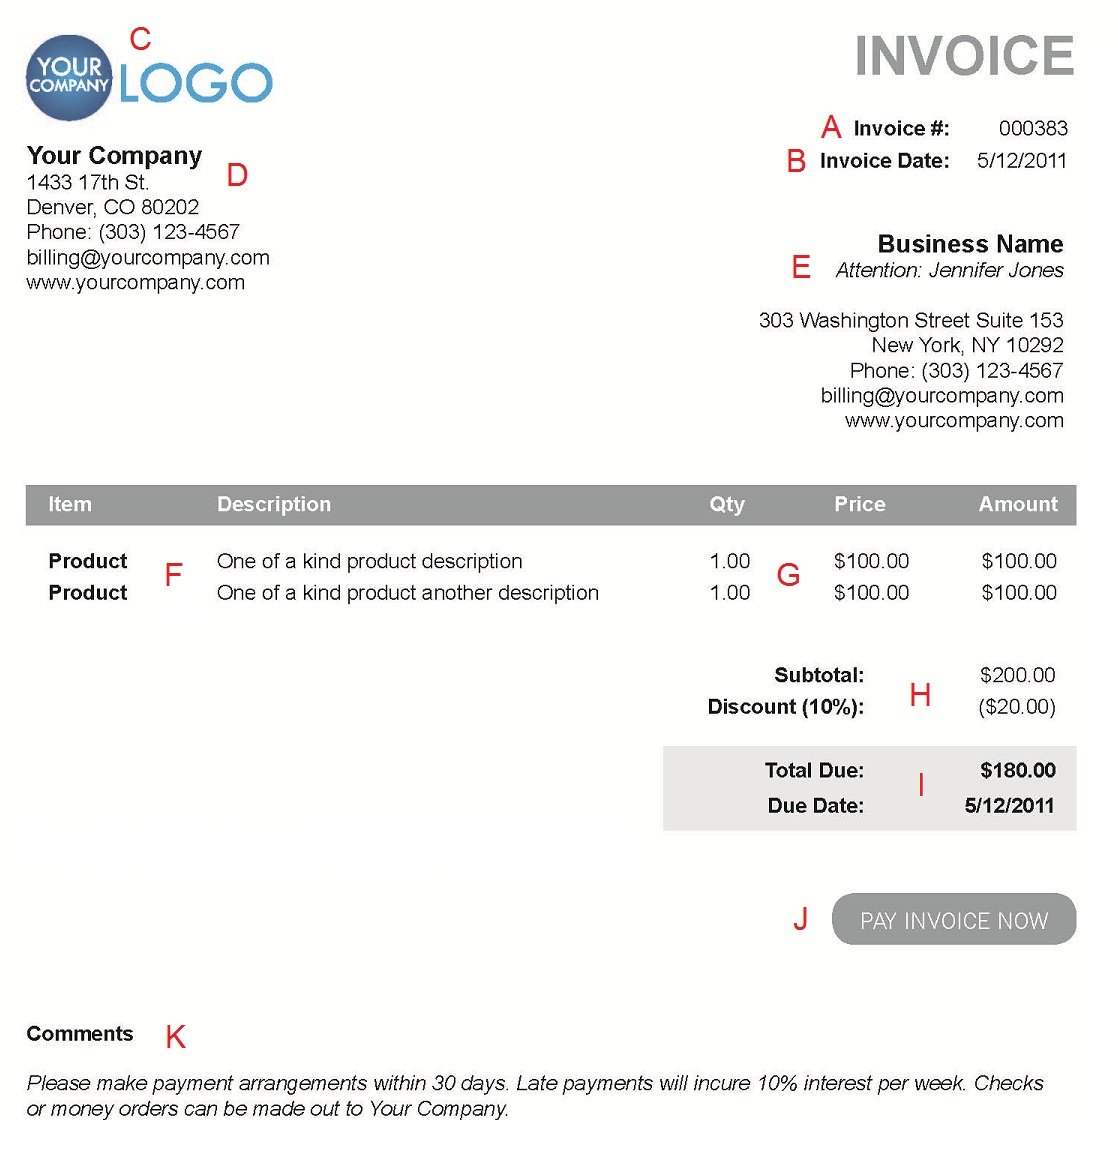 Reliefworkersus  Splendid The  Different Sections Of An Electronic Payment Invoice With Goodlooking A  With Delectable Invoice Dates Also Invoice Pro Forma In Addition Invoice Forma And Invoices Free Templates As Well As Import Invoice Additionally Accrued Invoices From Paysimplecom With Reliefworkersus  Goodlooking The  Different Sections Of An Electronic Payment Invoice With Delectable A  And Splendid Invoice Dates Also Invoice Pro Forma In Addition Invoice Forma From Paysimplecom